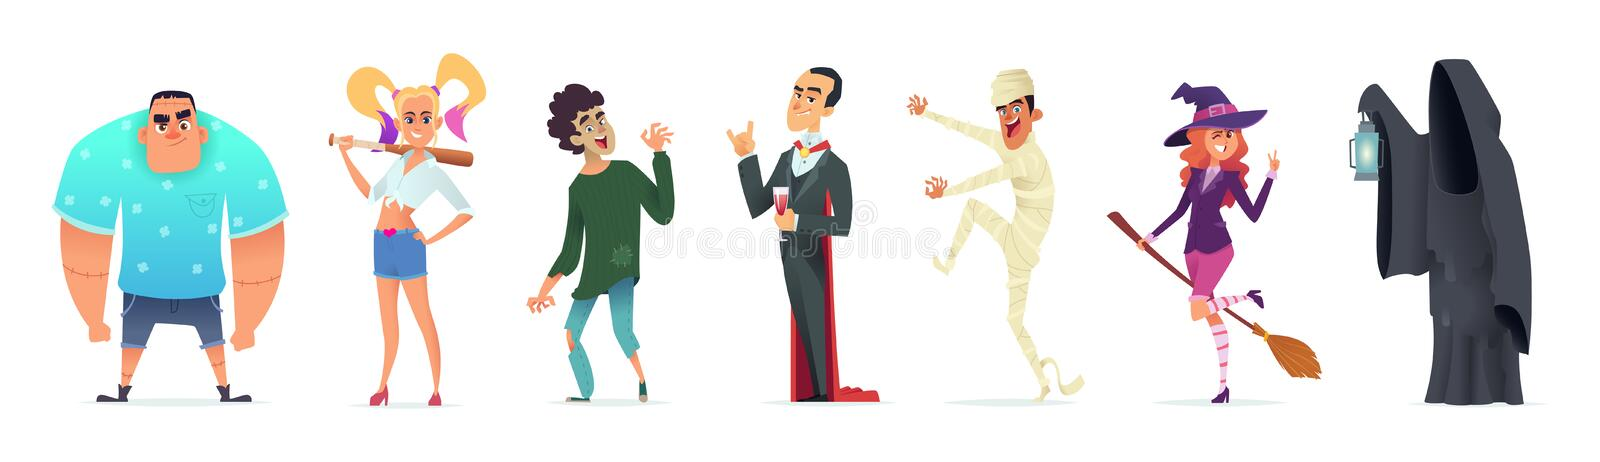 People in costumes for Halloween. Character design for a happy Halloween party. Vector illustration. People in costumes for Halloween. Character design for a stock illustration